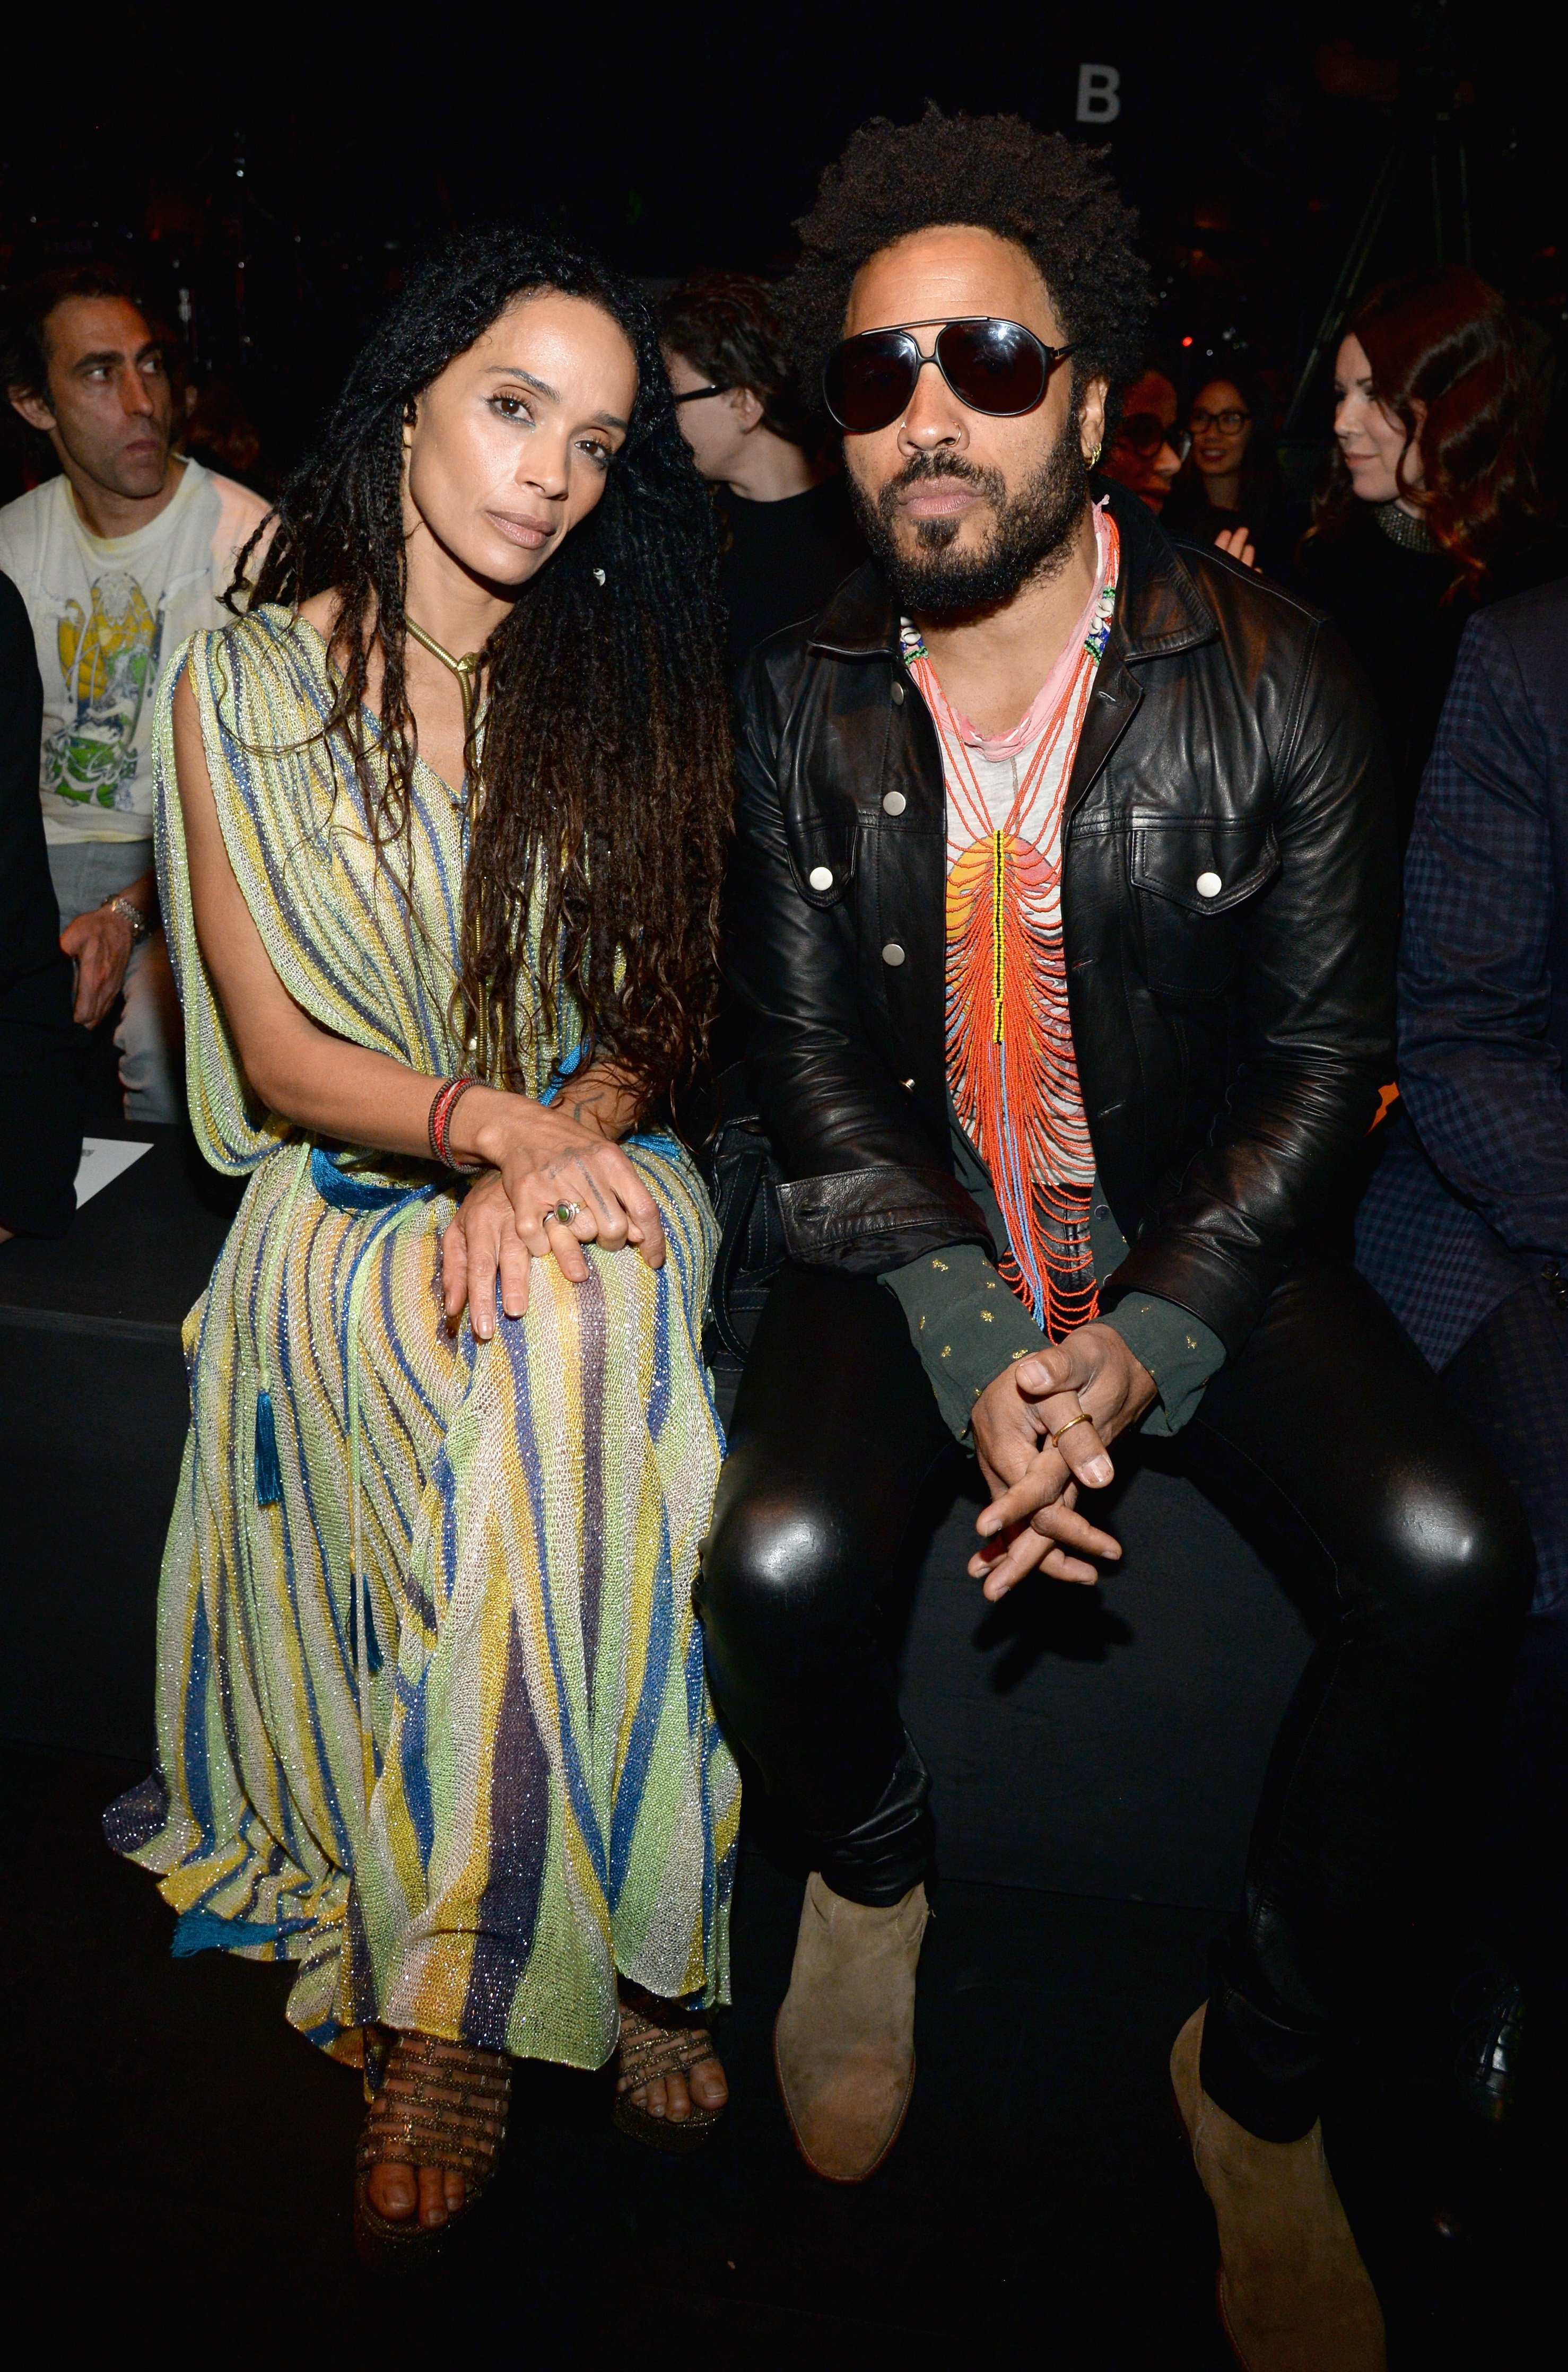 Lisa Bonet and recording artist Lenny Kravitz attend Saint Laurent at the Palladium in February 2016. | Photo: Getty Images